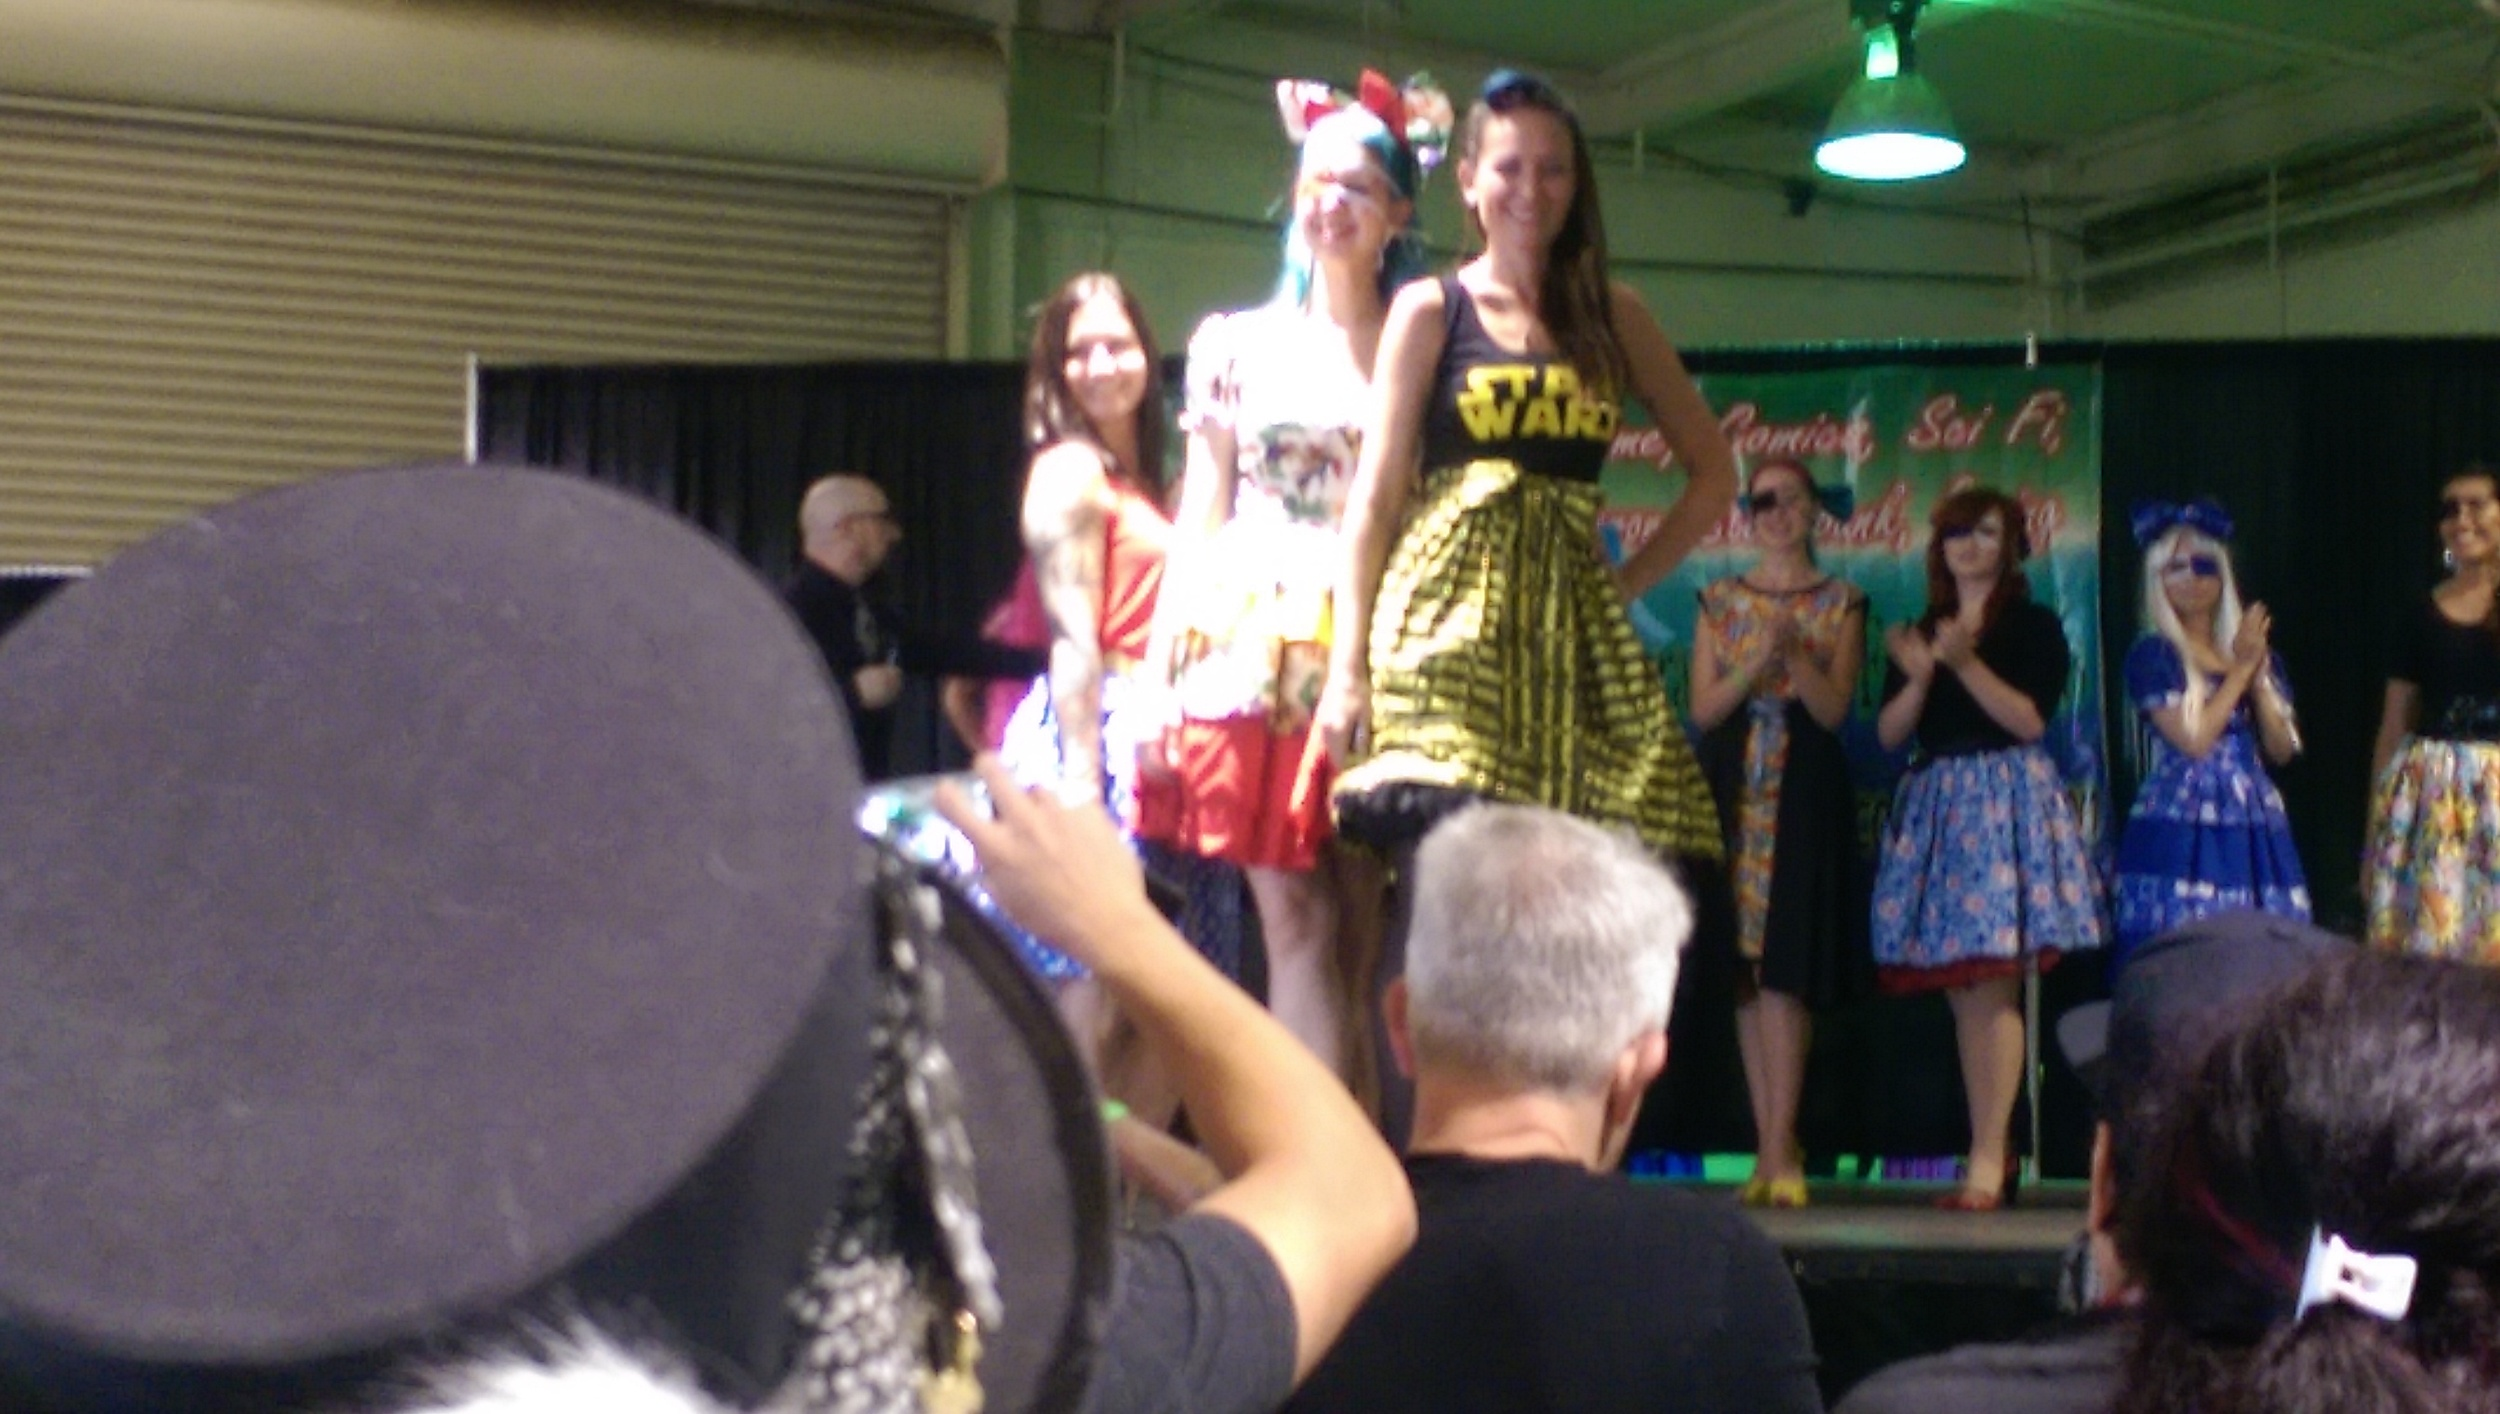 The Geek Fashion Show, the line in the photo was designed by  Girl With One Eye .